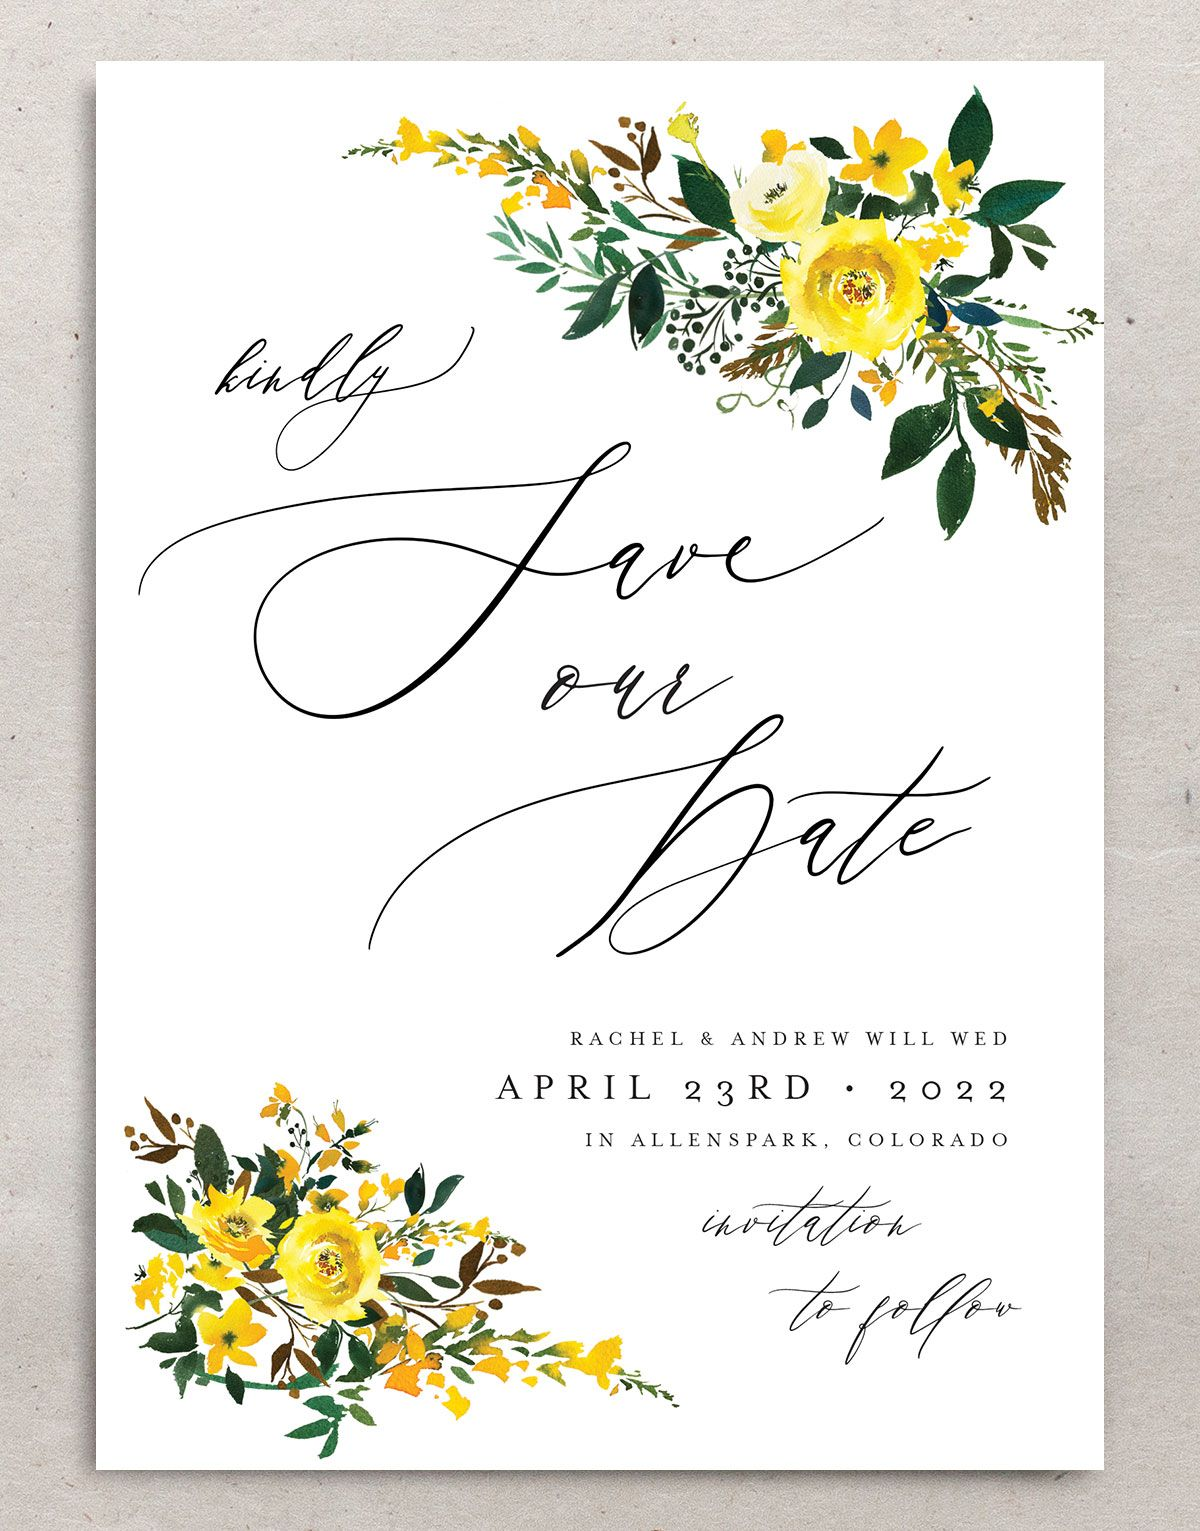 Cascading Altar save the dates in yellow